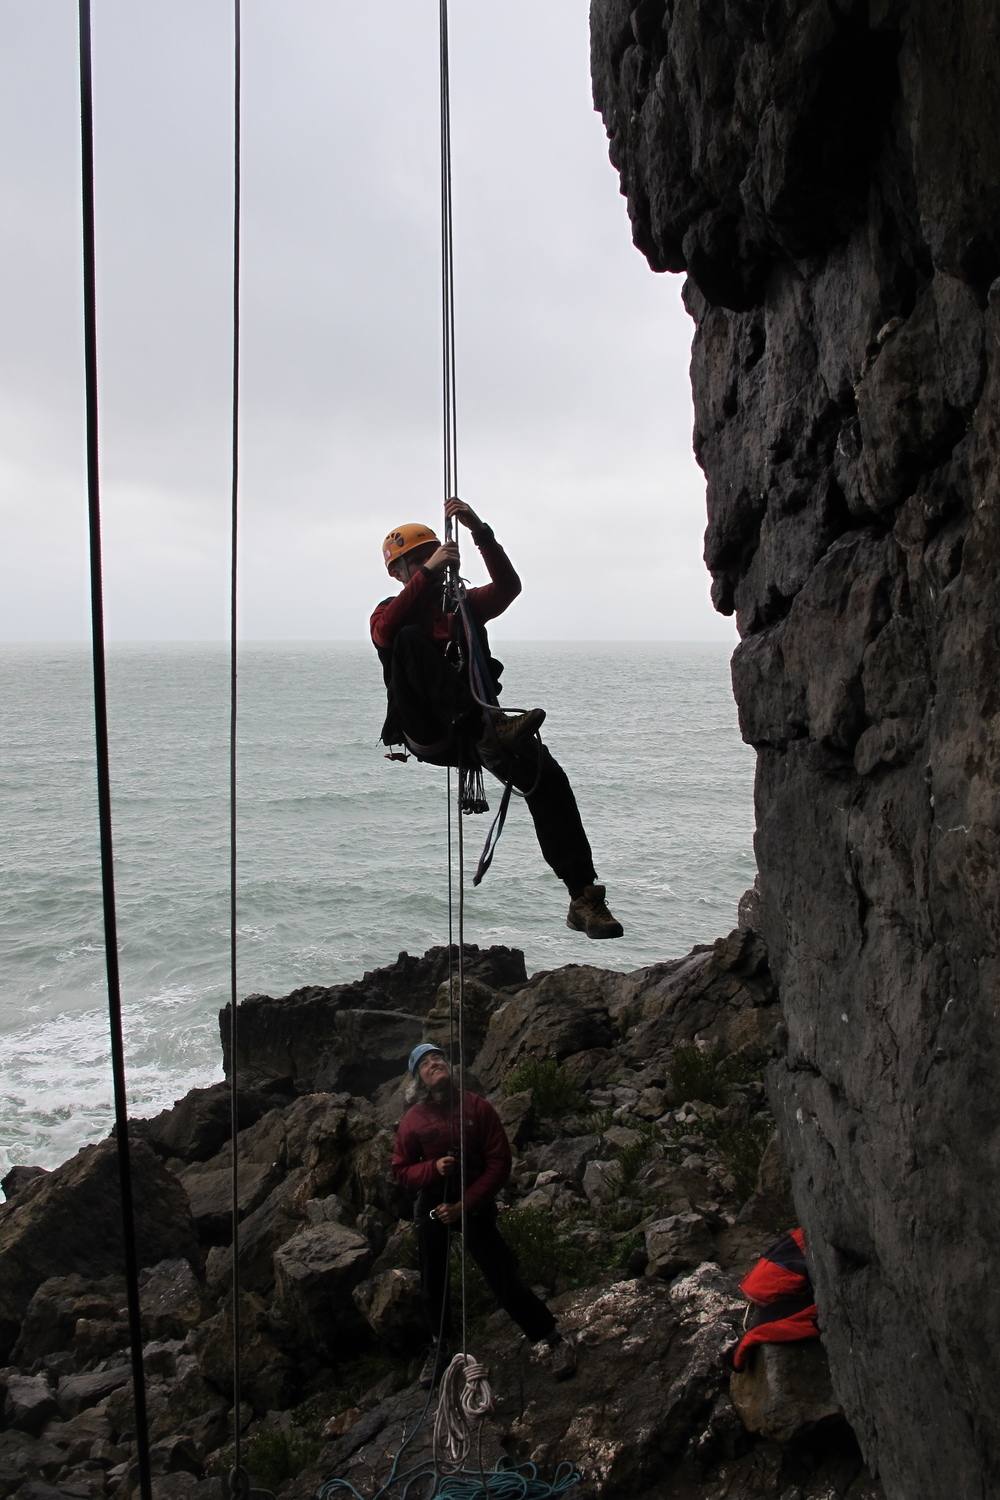 Ascending a fixed rope